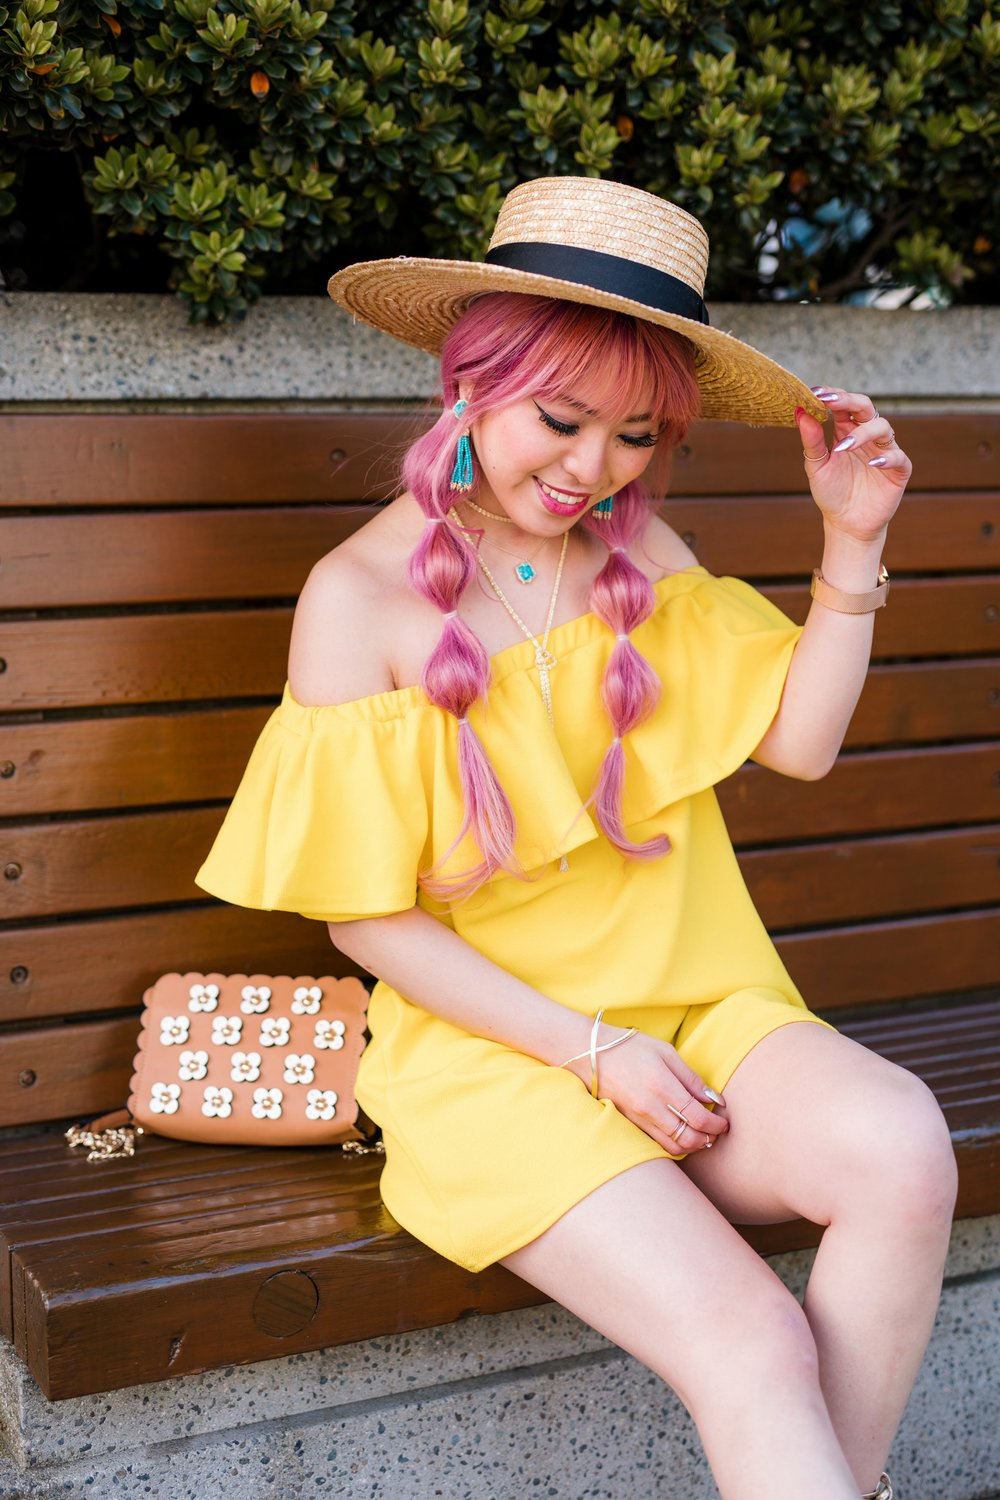 Lack Of Color Wide brim Straw Hat_Boohoo Yellow Off the shoulder dress via ASOS_ZARA CROSSBODY BAG WITH FLOWERS_Shoe Dazzle Lace up Wedge Sandals_Kendra Scott MISHA STATEMENT EARRINGS IN BRONZE VEINED TURQUOISE_KACEY LONG PENDANT NECKLACE IN BRONZE VEINED TURQUOISE_Phara Necklace In Gold_Stella Cuff Bracelet In Gold_Pink Hair_bubble pigtails hairstyle_Aikas Love Closet_Seattle Fashion Style Blogger_Japanese 3